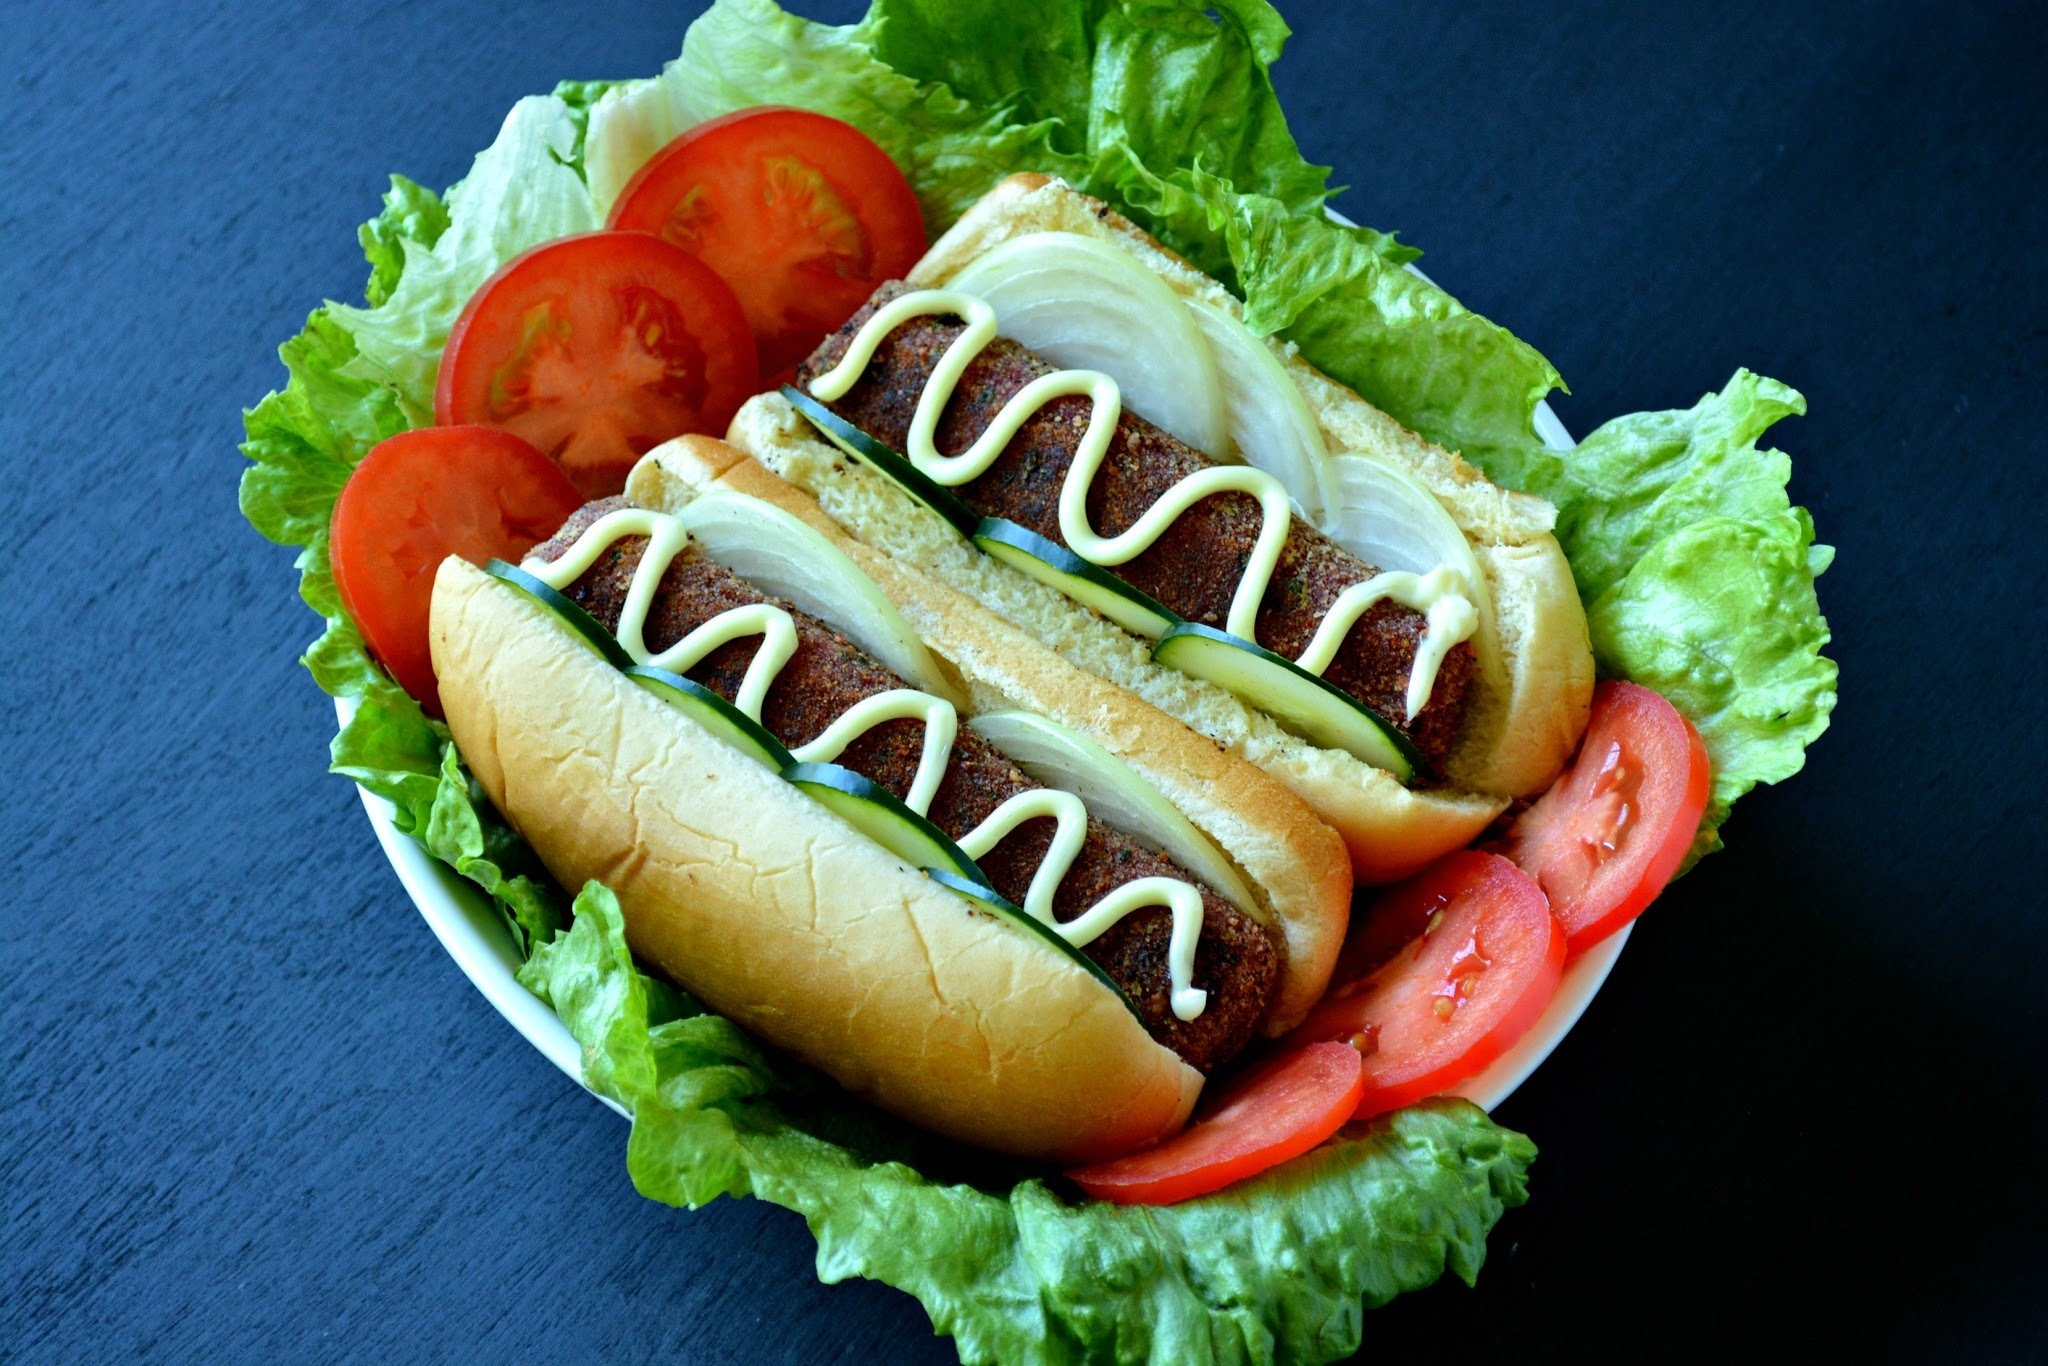 Vegan Veggie Dogs - Tastier, healthier than meat!